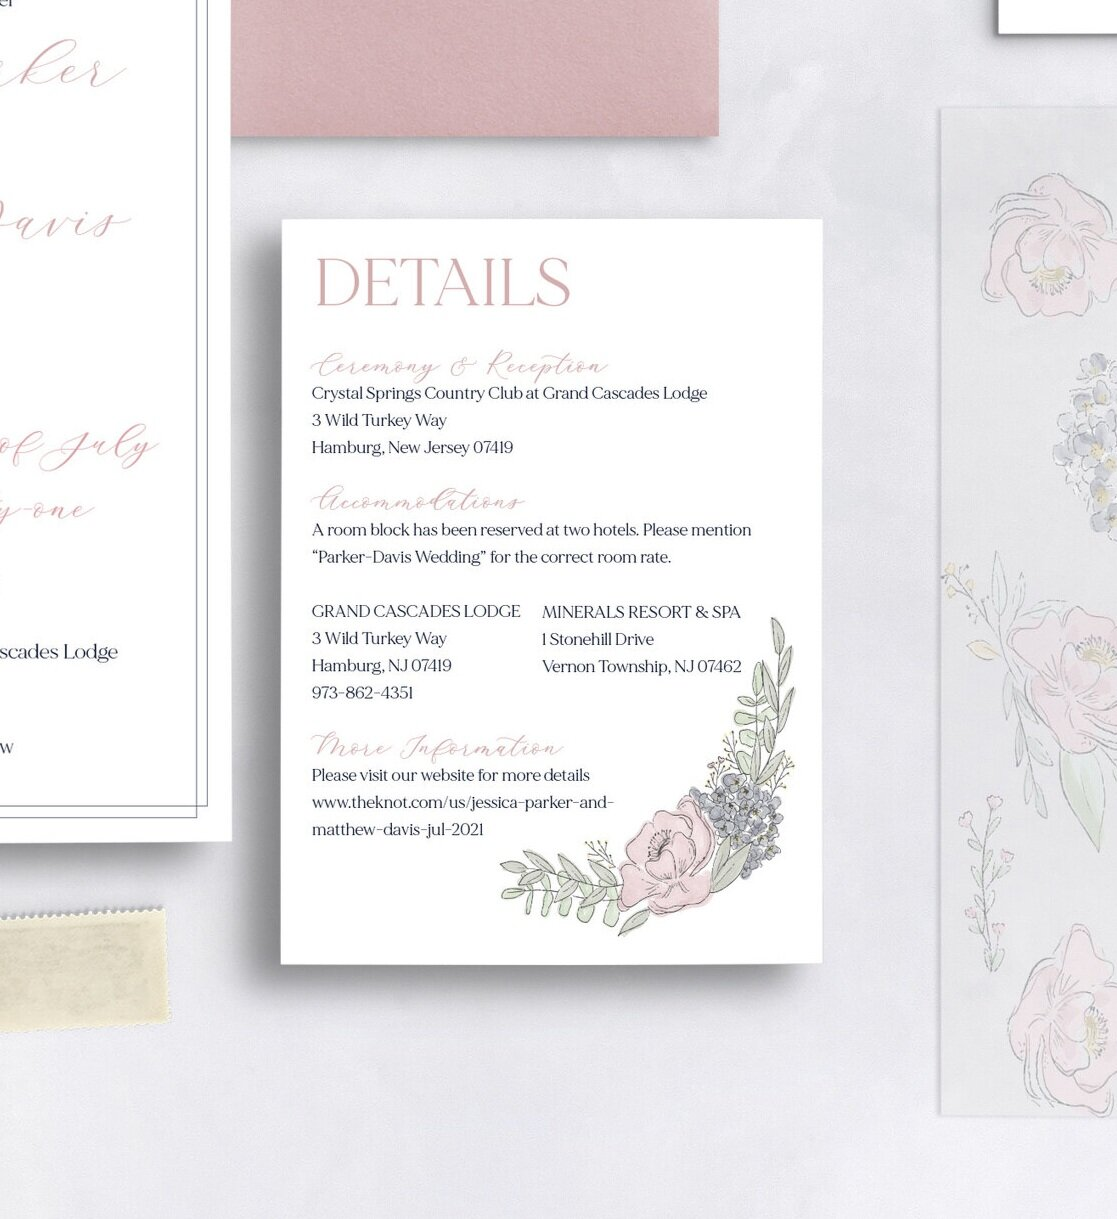 what should i include on my wedding details card